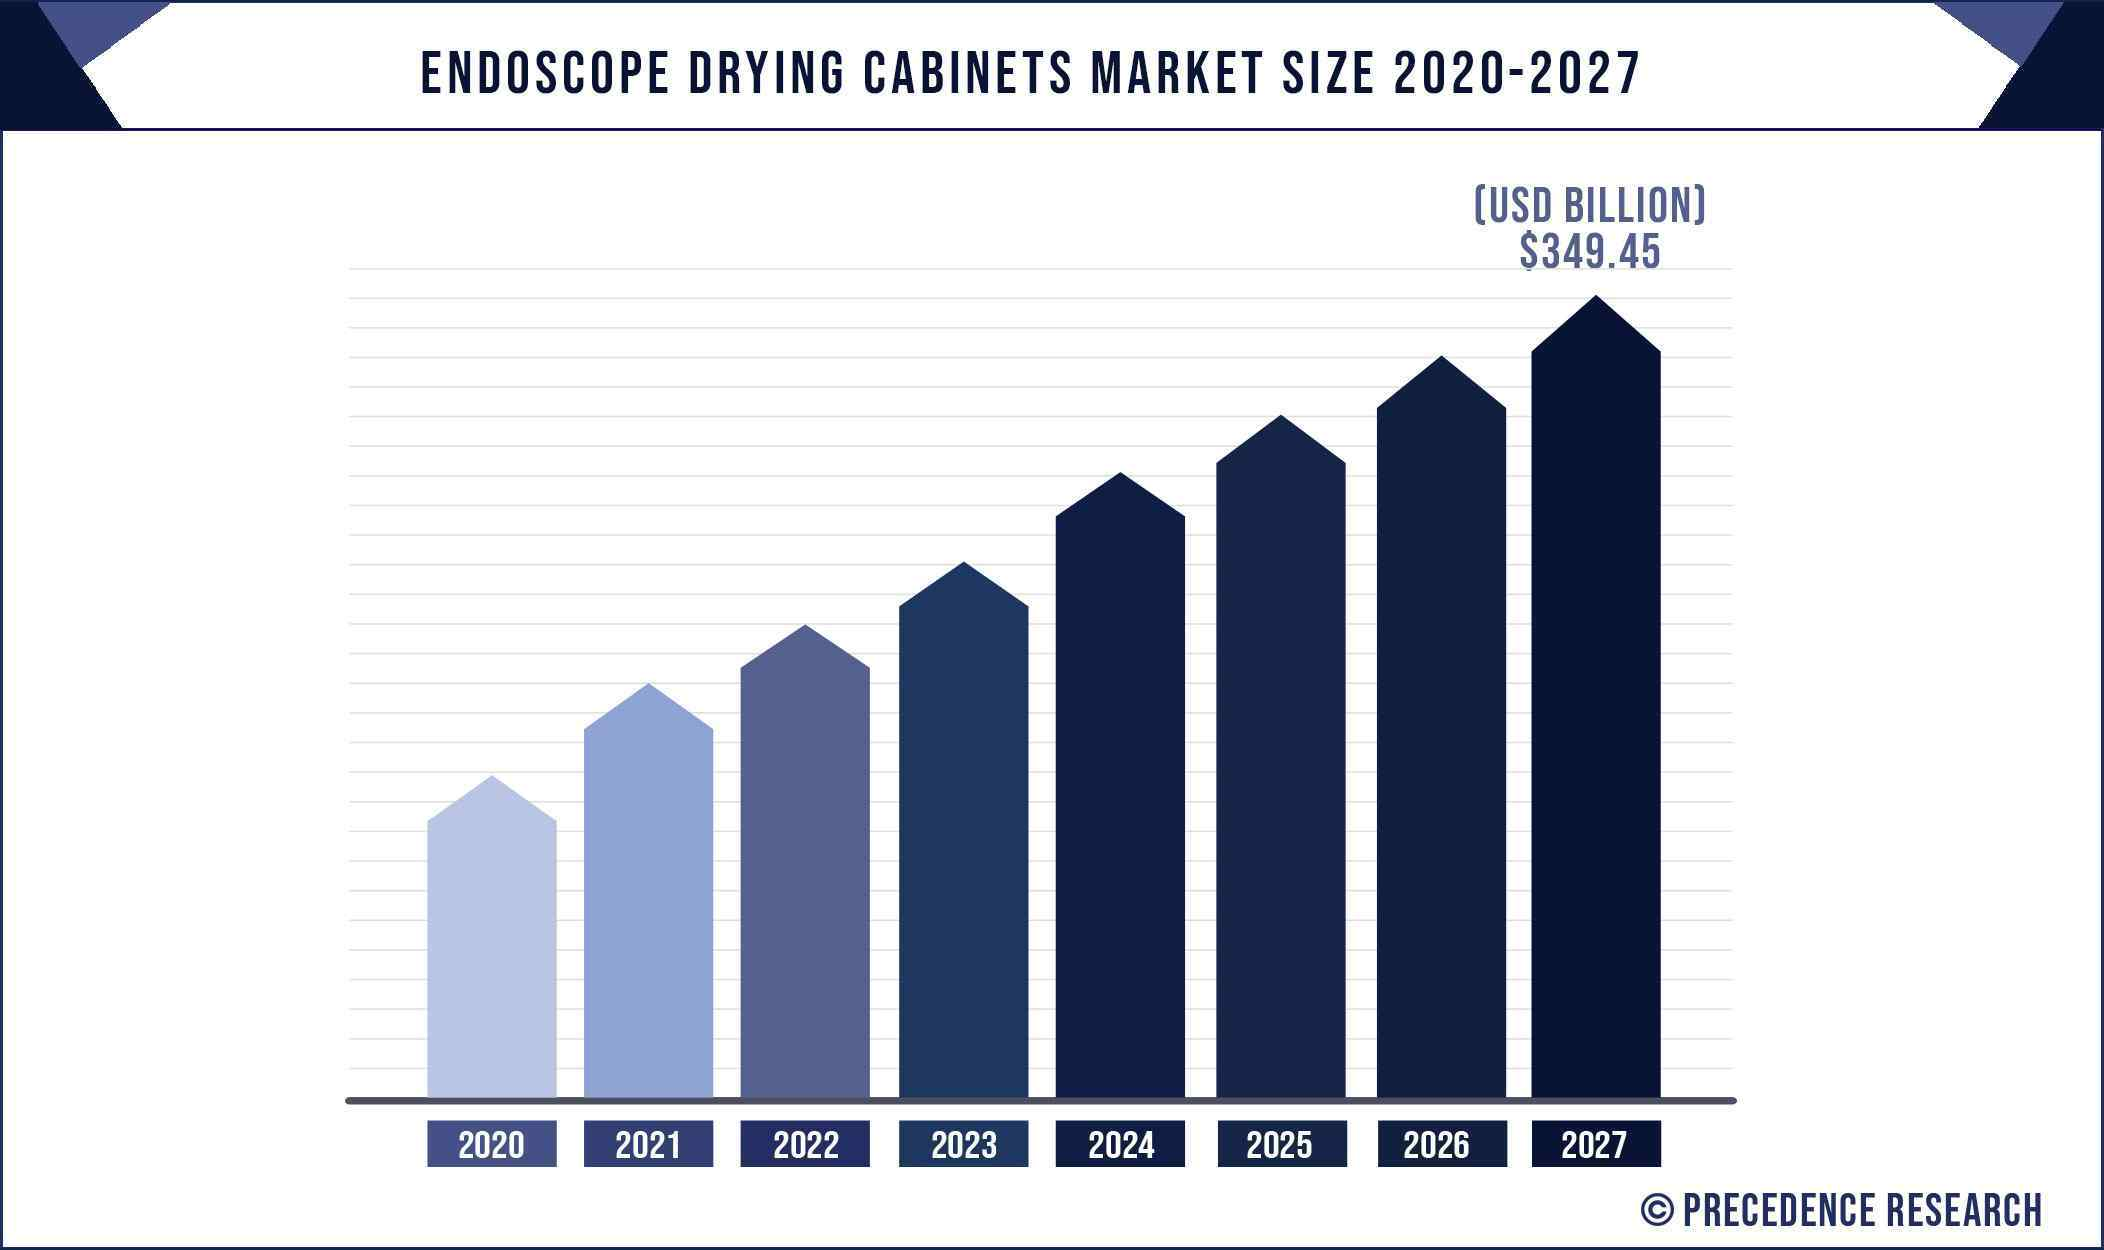 Endoscope Drying Cabinets Market Size 2020 to 2027